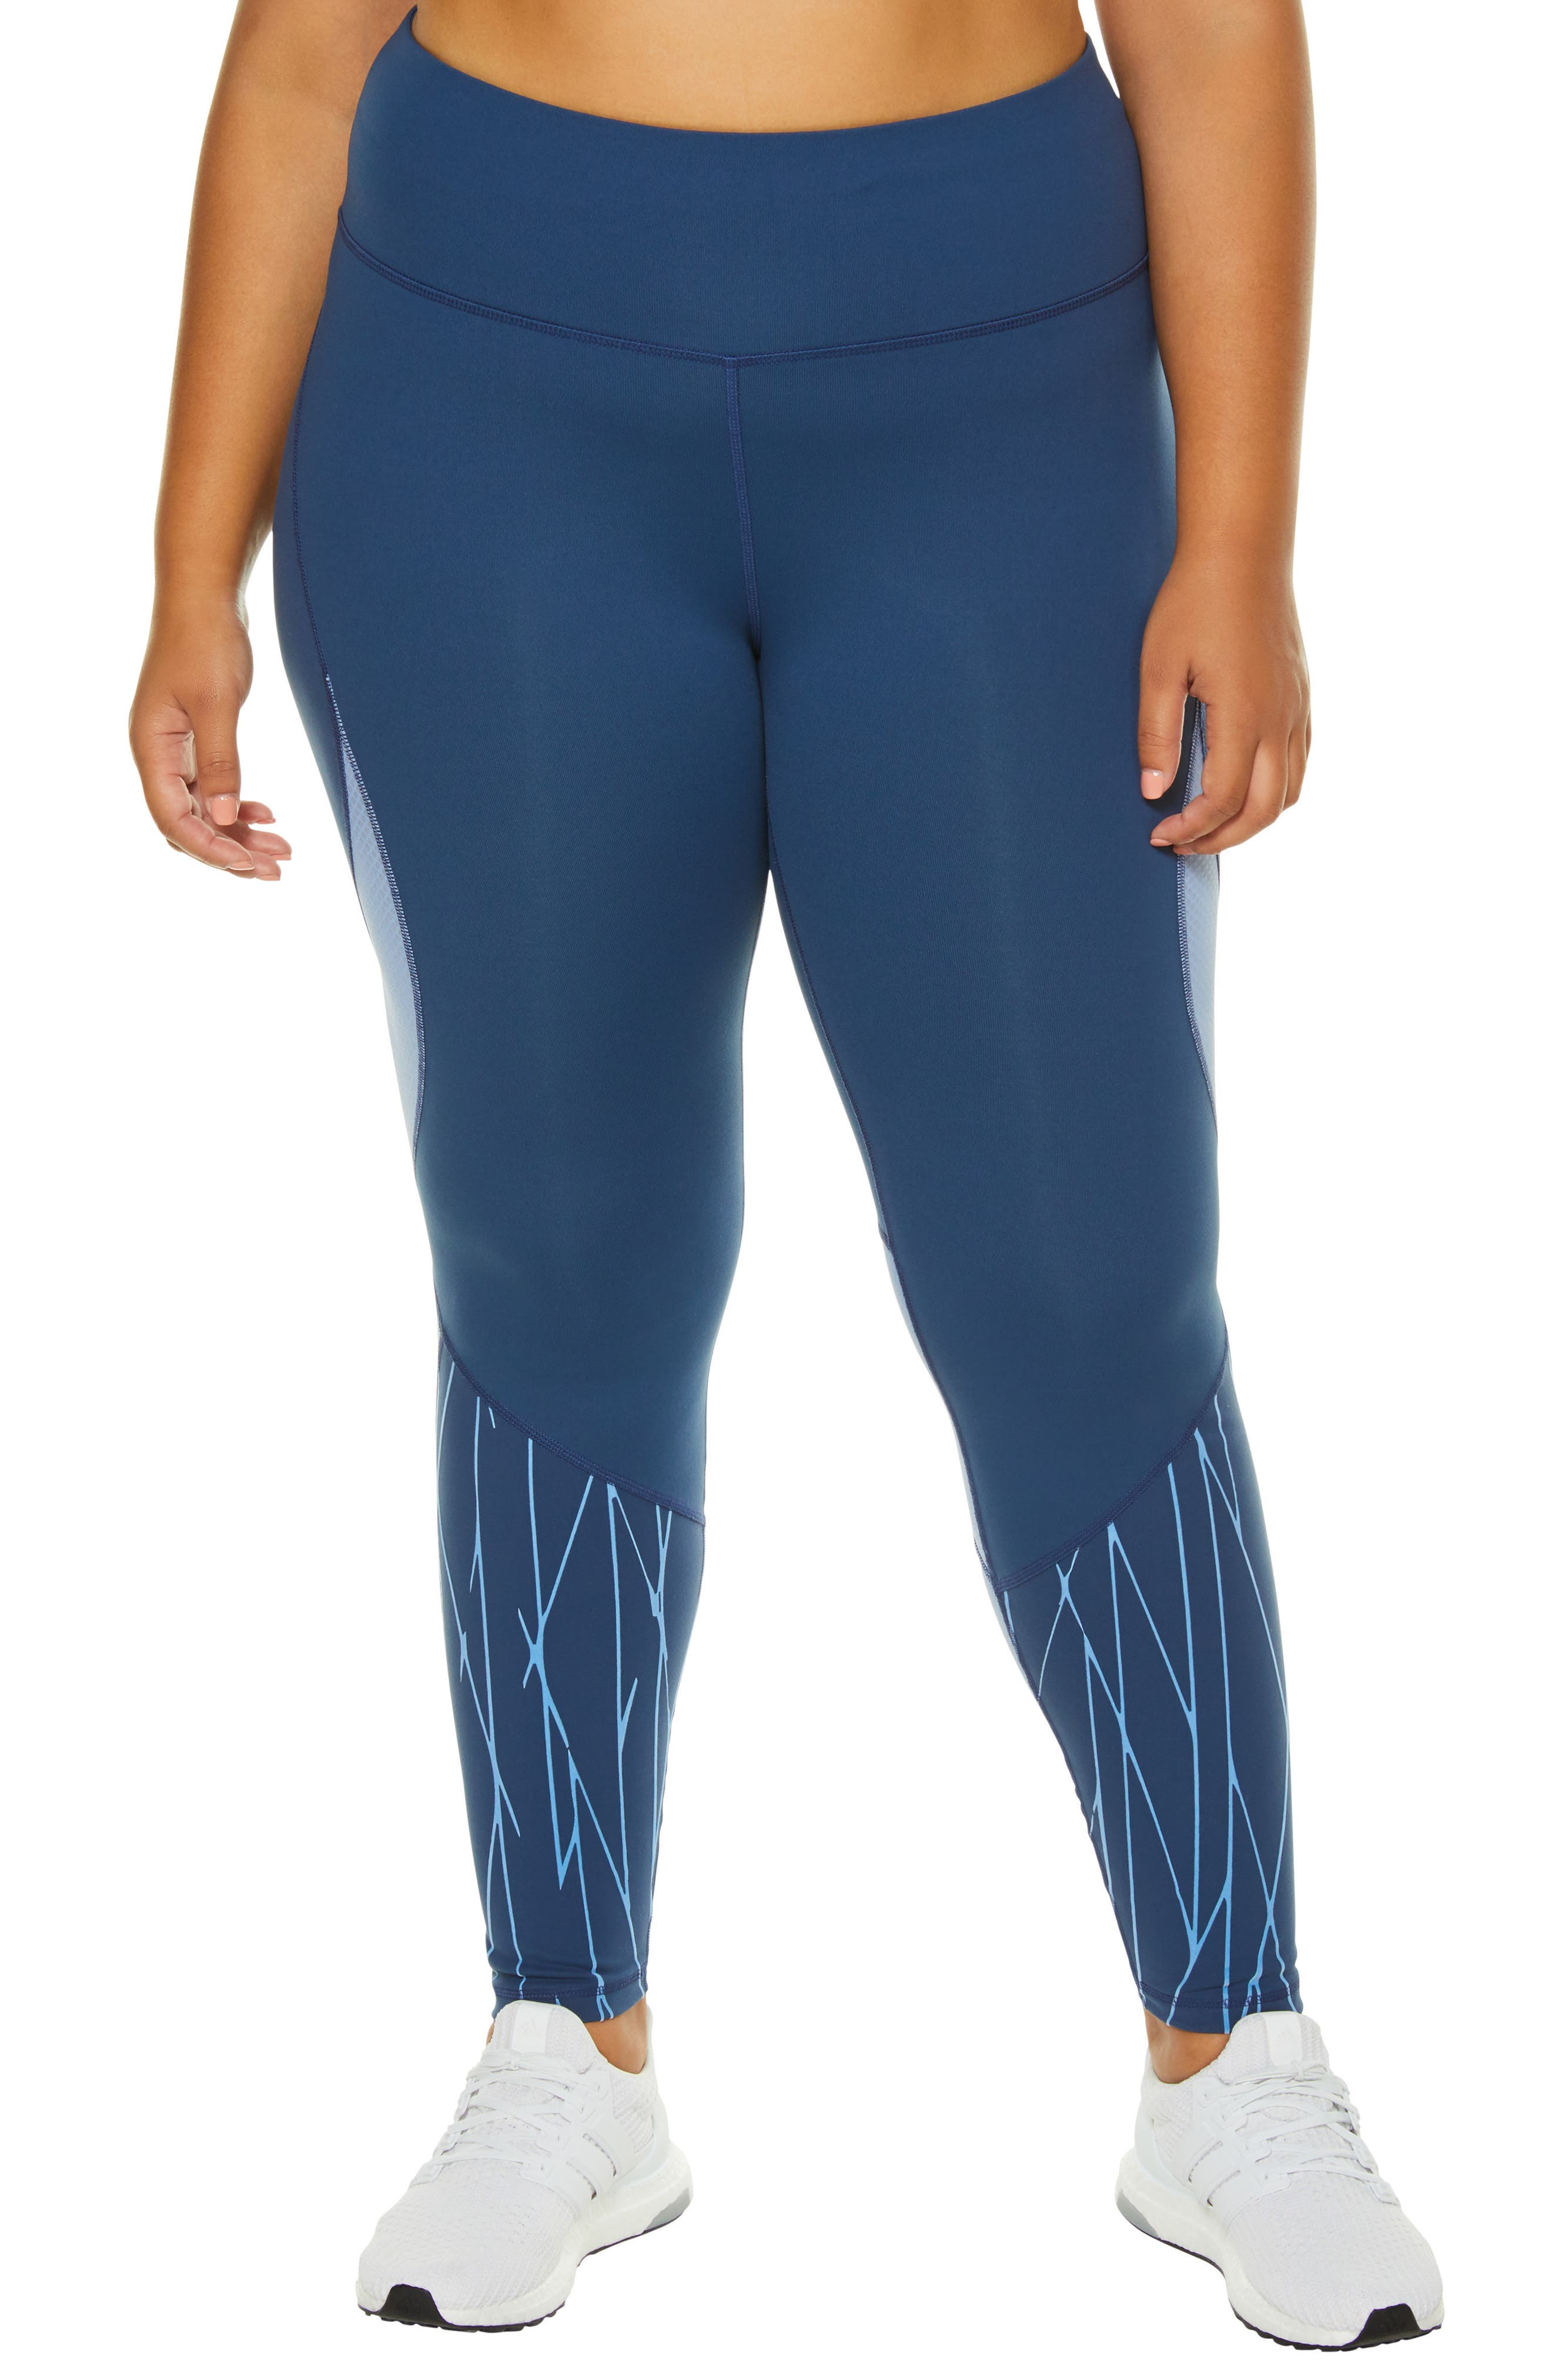 SHAPE ACTIVEWEAR Stealth Leggings, Main, color, INSIGNIA